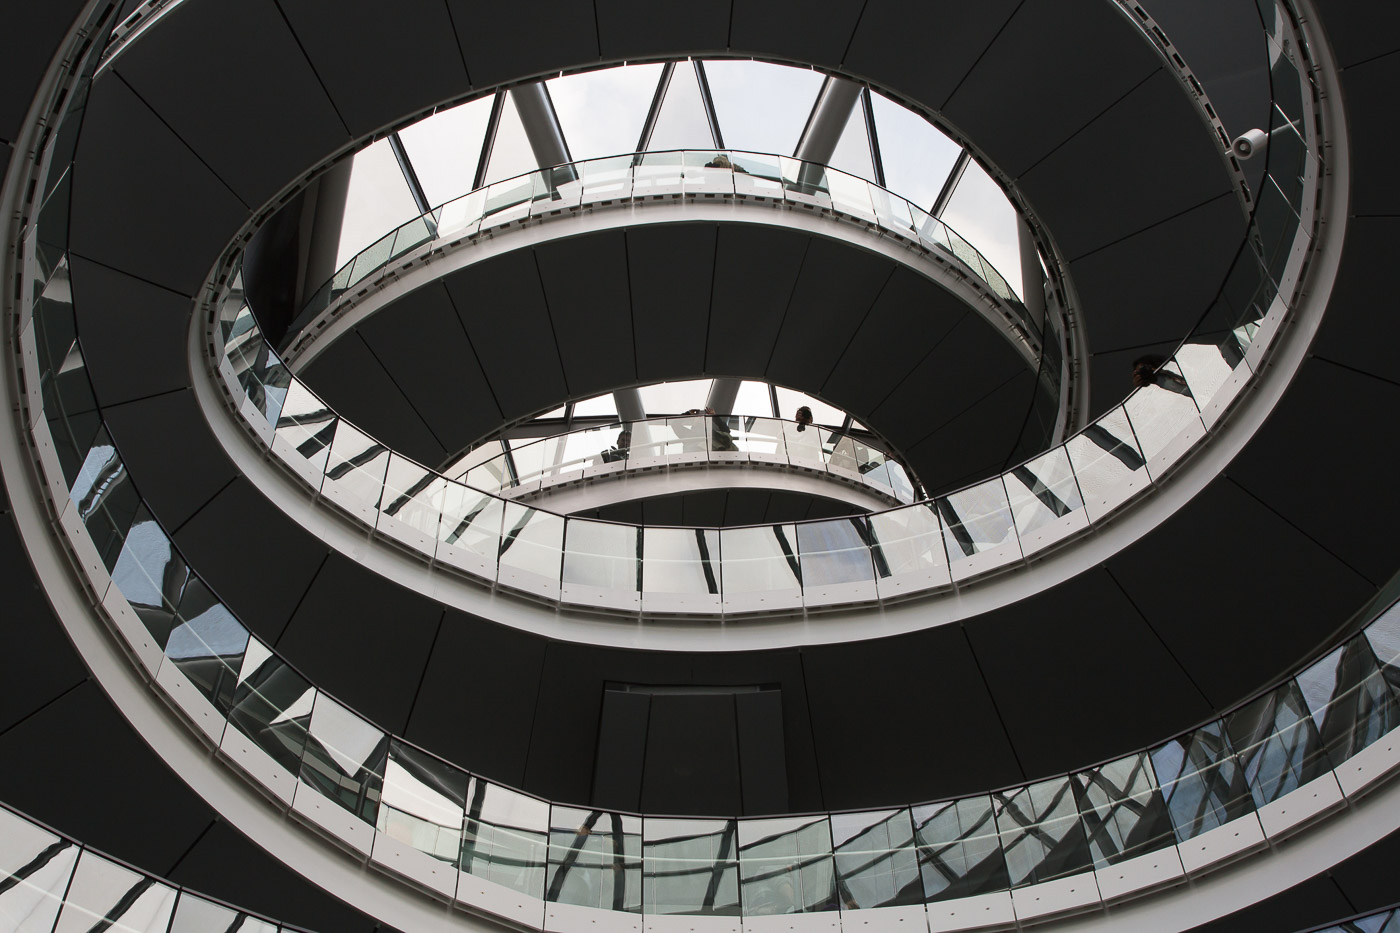 Memorable Staircase Designs - City Hall, London